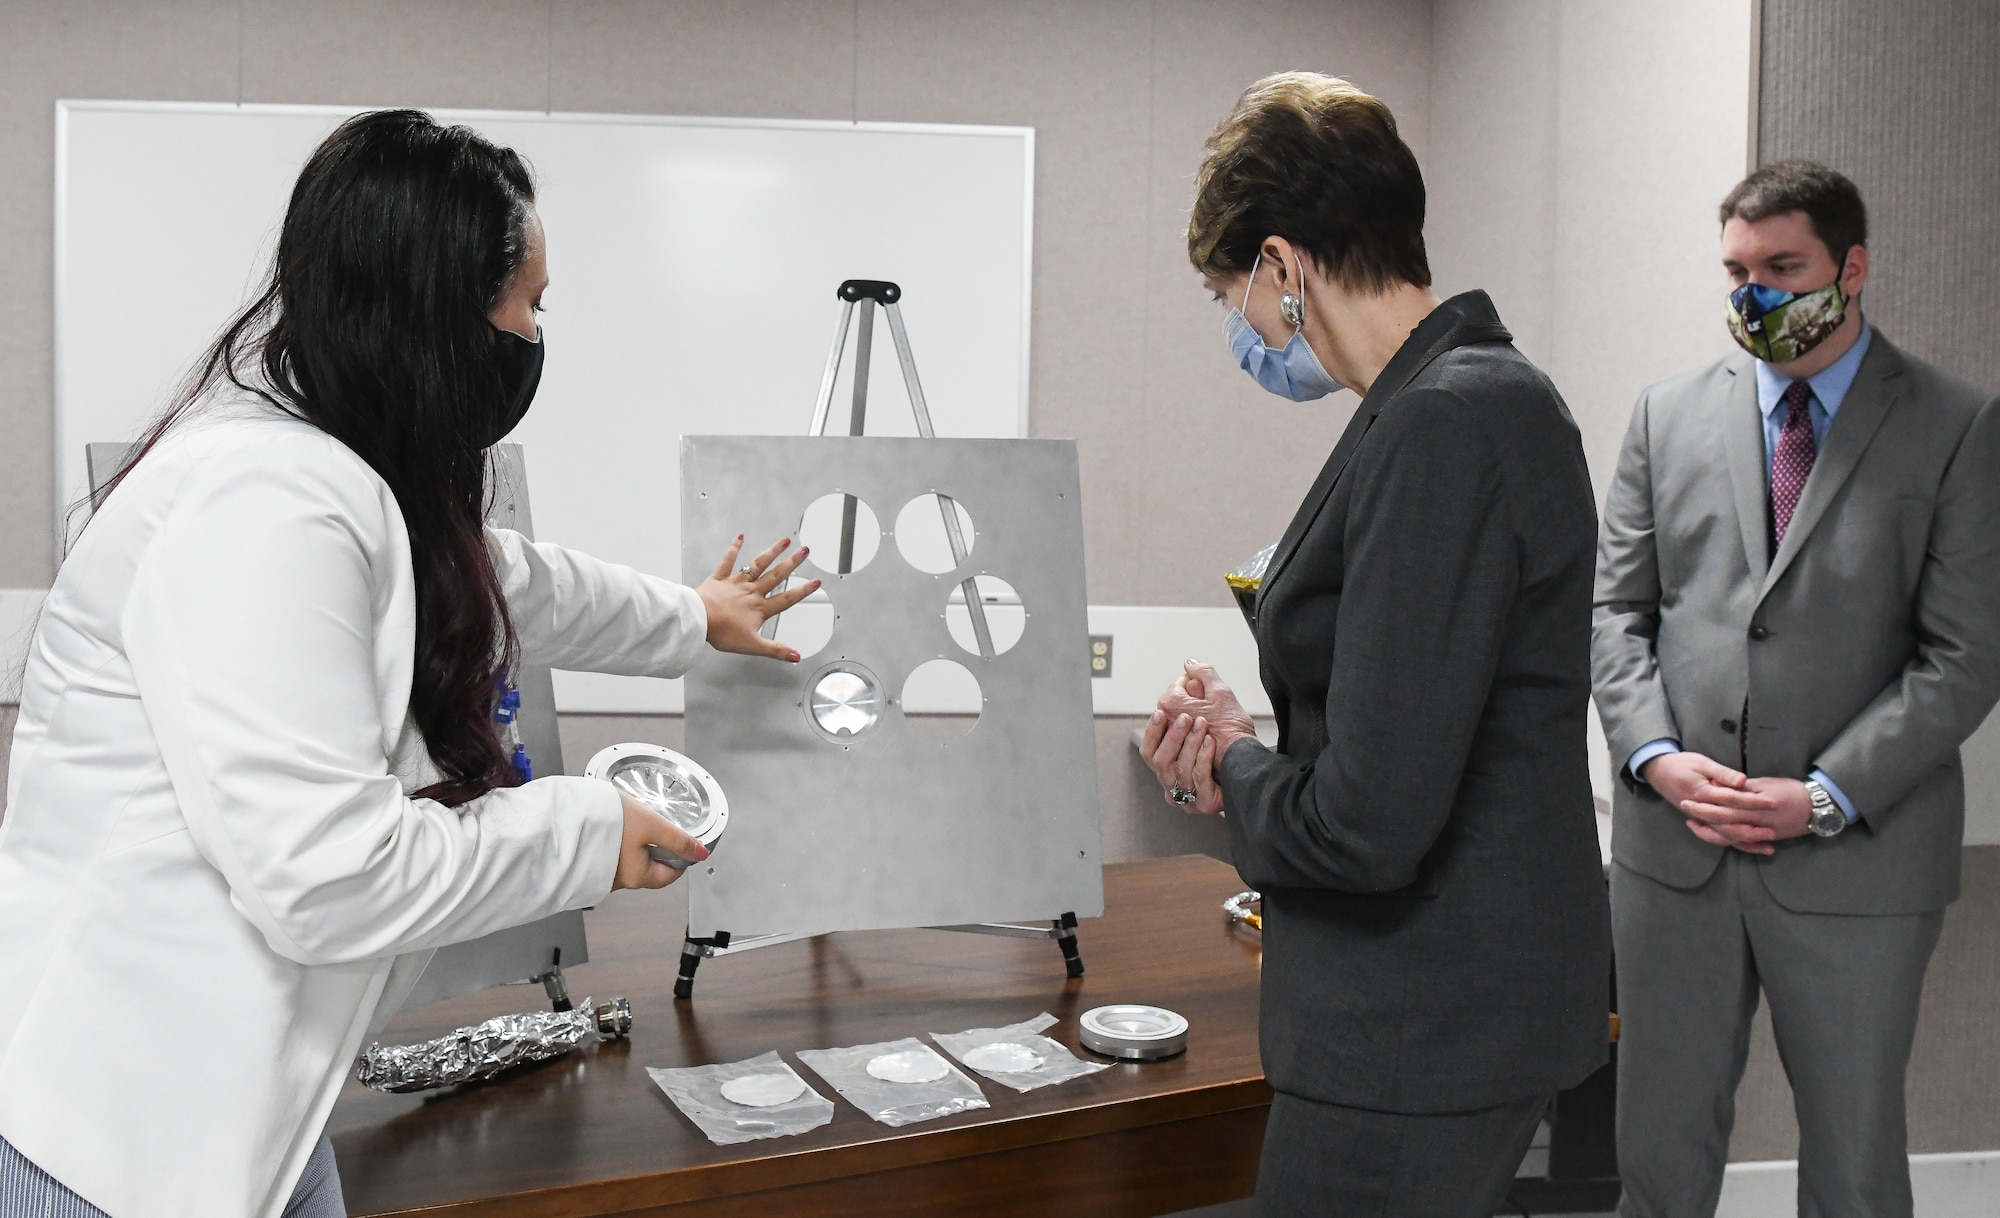 Kellye Burns, left, a space test engineer, shows Secretary of the Air Force Barbara Barrett some of the hardware and samples used during a materials test in teh Space Threat Assessment Testbed at Arnold Air Force Base, Tenn., June 18, 2020. Also pictured is John Claybrook, capability manager for Space Asset Resilience. (U.S. Air Force photo by Jill Pickett)